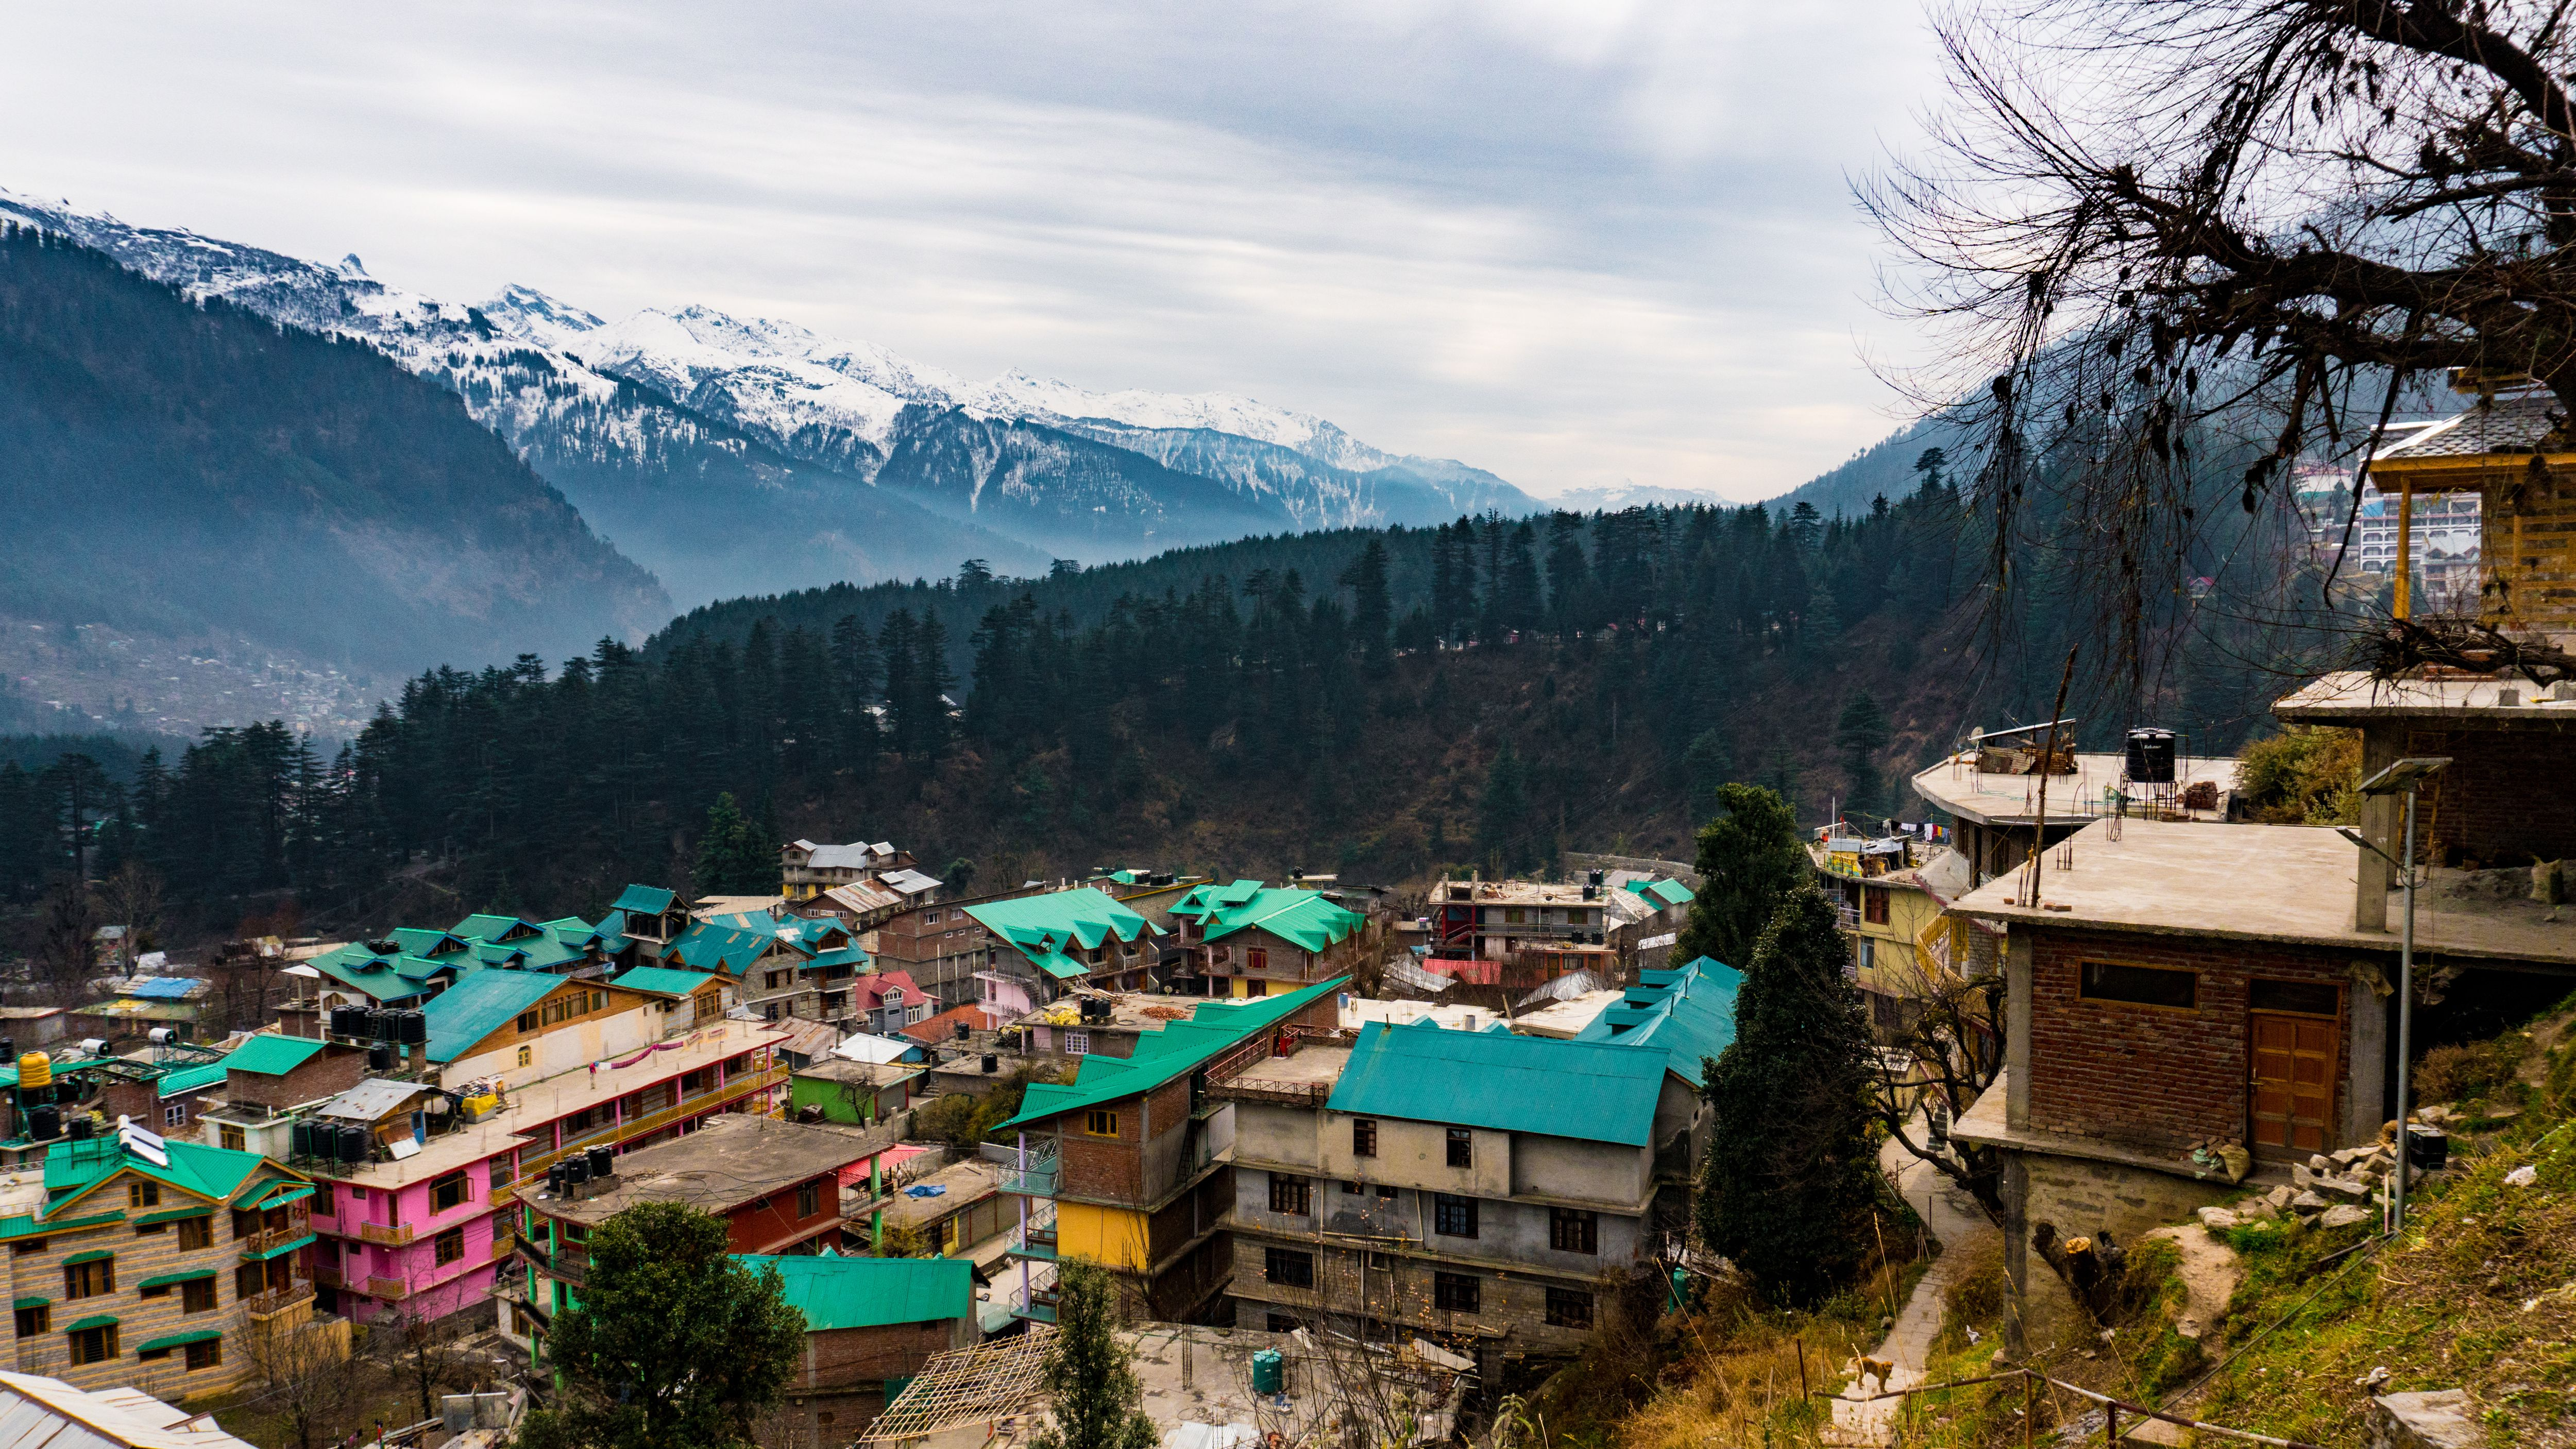 Manali India: Travel Guide and Best Way to Get There